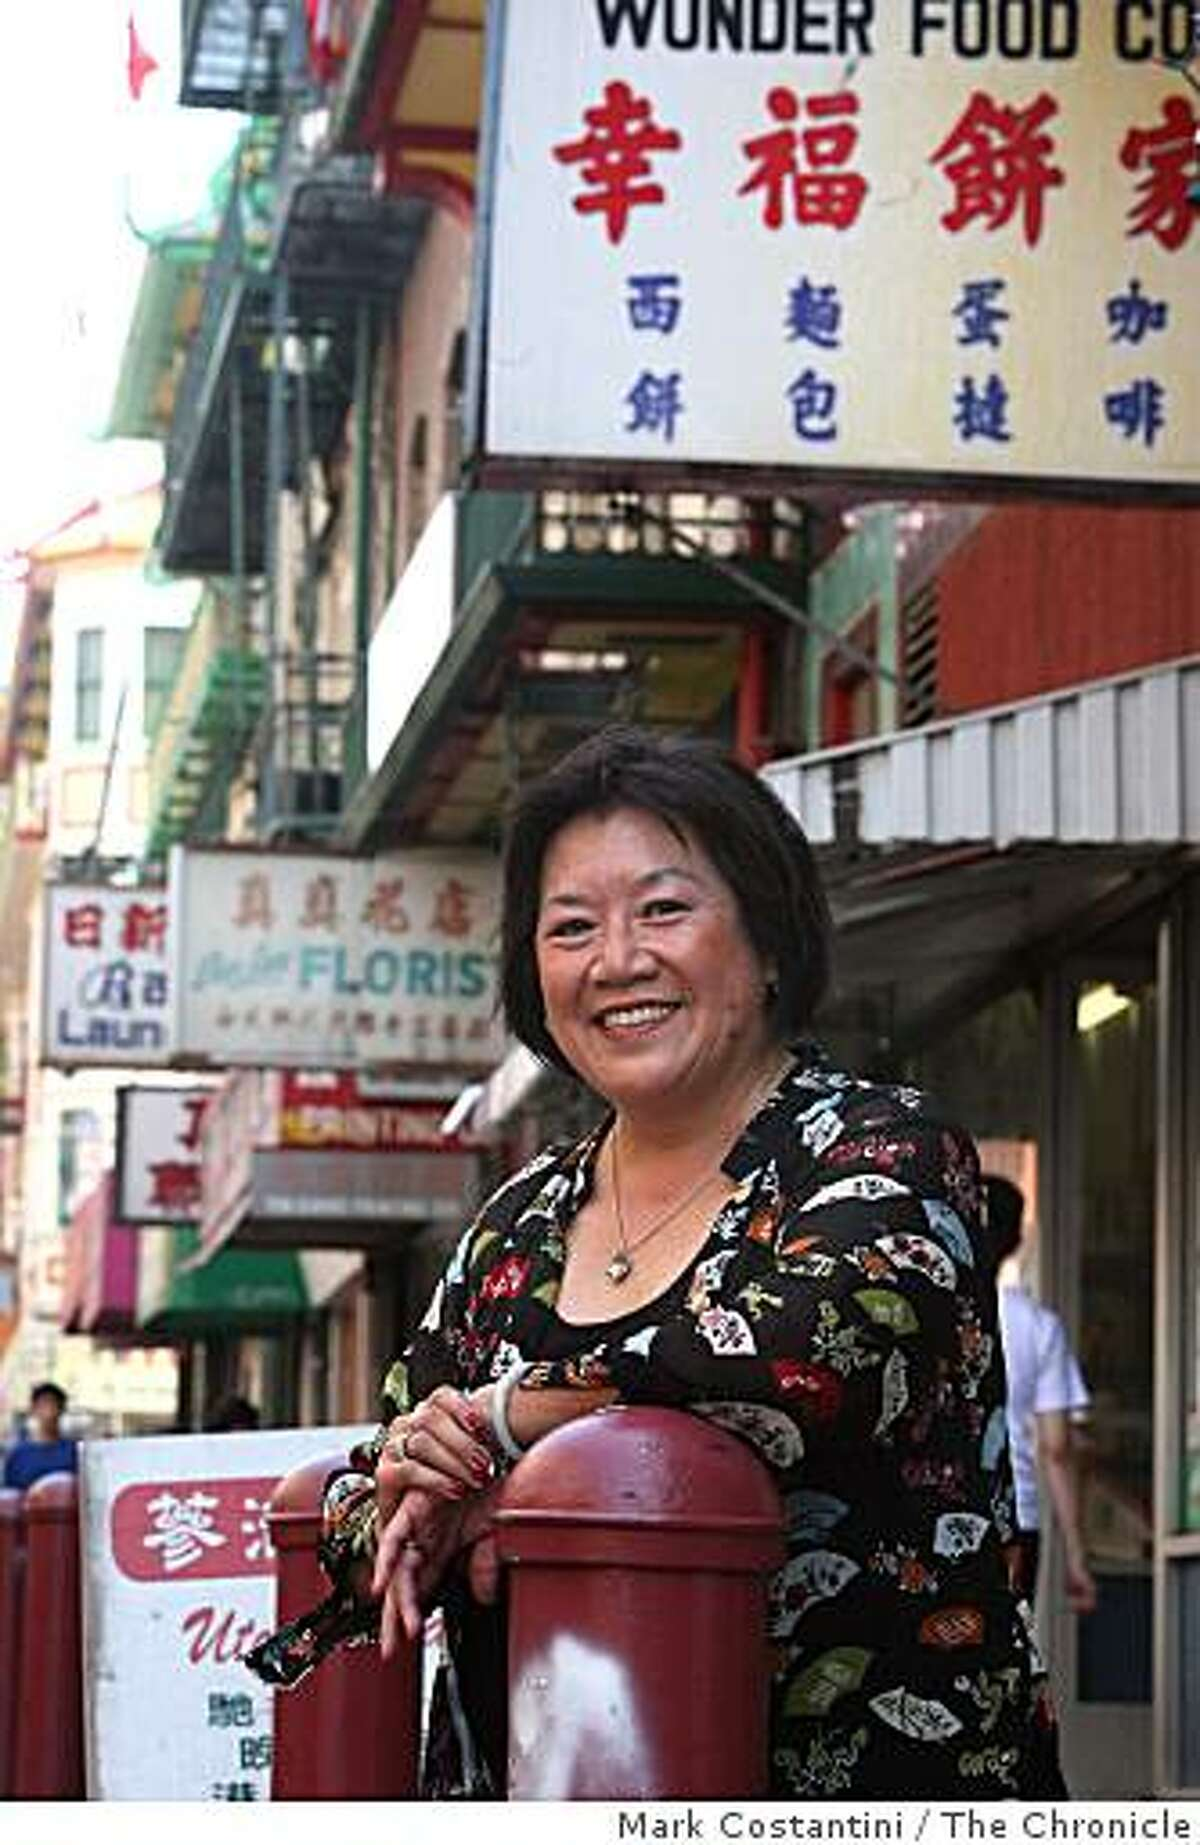 """Shirley Fong-Torres, who has a new book: """"The Woman Who Ate Chinatown."""" poses in Chinatown in San Francisco, Calif., on July 9, 2008. Photo by Mark Costantini / The Chronicle"""